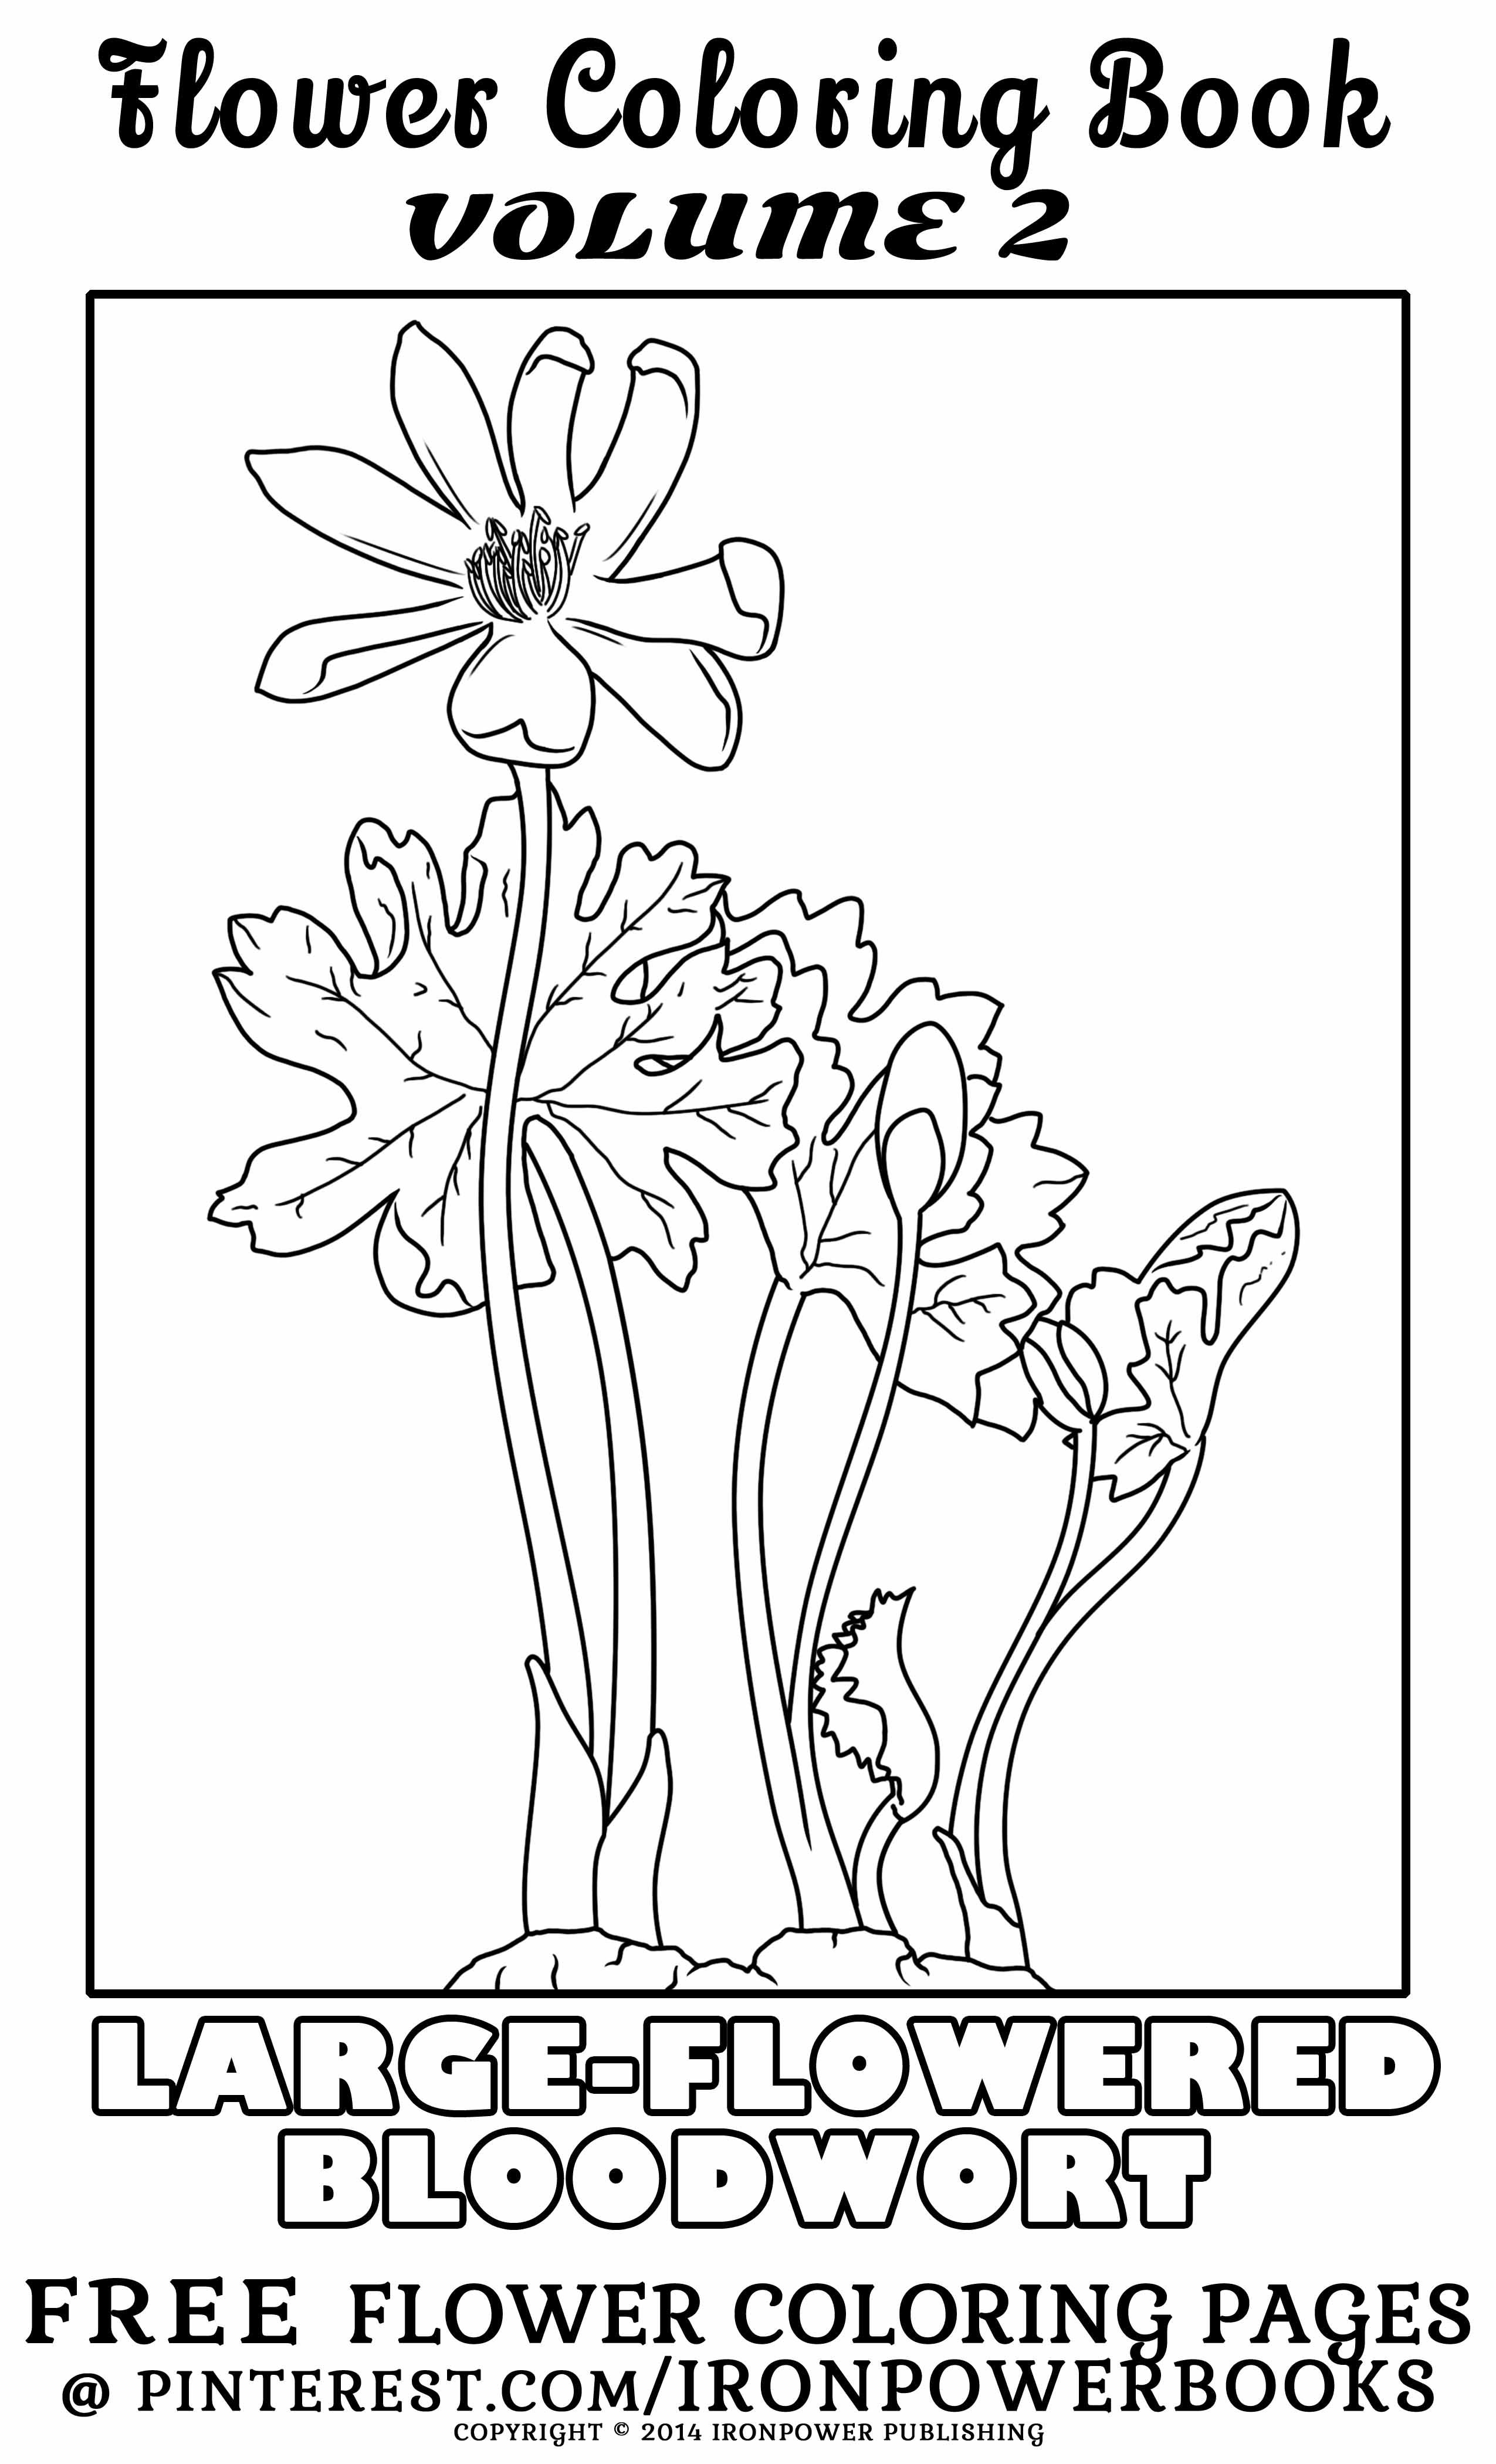 Free Flower Coloring Page From Flower Coloring Book Volume 2 Available At Http Www Amazon Com Botanical B Flower Coloring Pages Coloring Pages Coloring Books